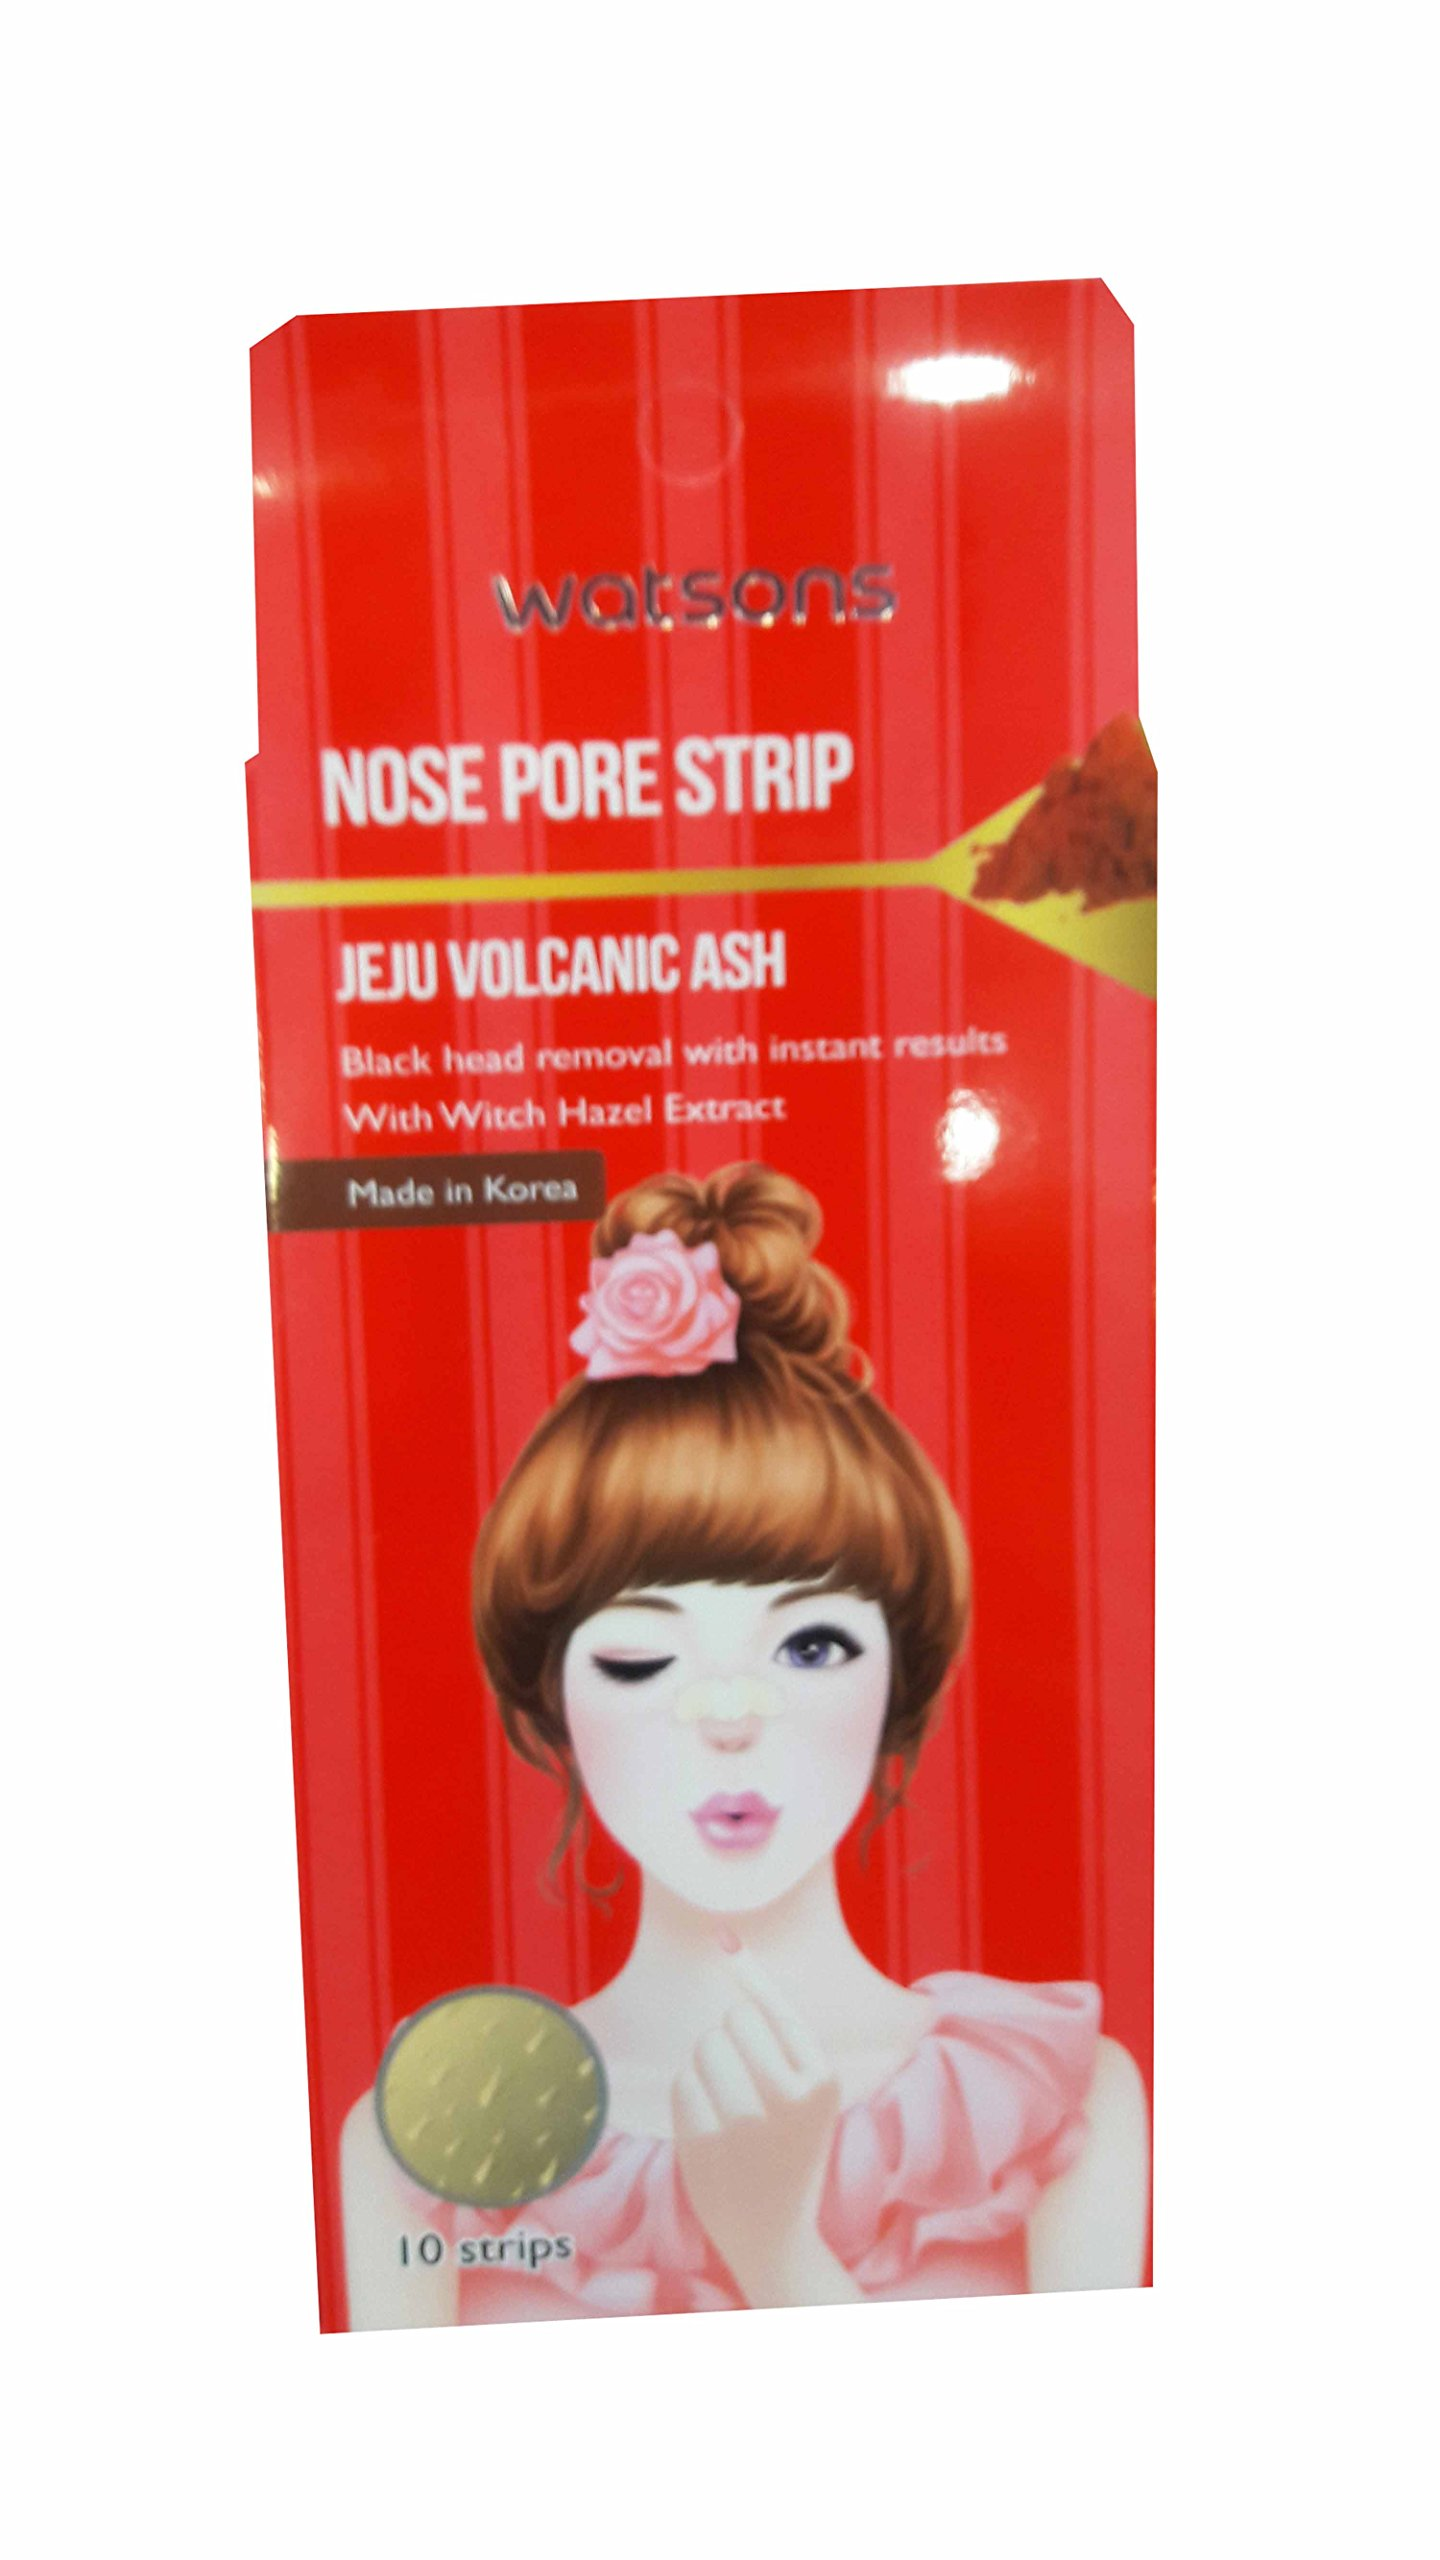 4 Packs of Watsons Jeju Volcanic Ash Nose Pore Strips with Witch Hazel Extract. (10 Strips/Pack)